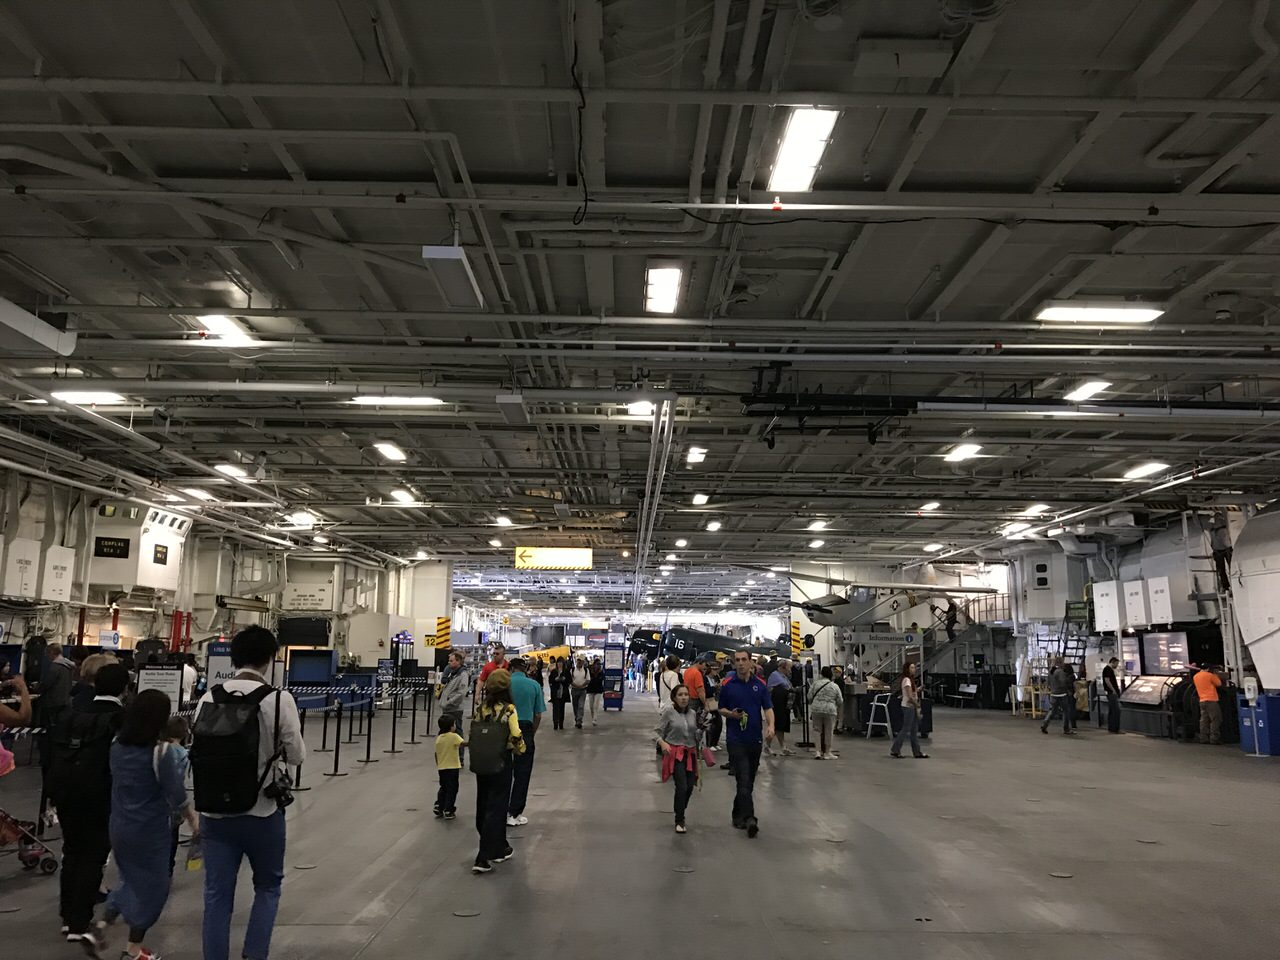 Uss midway museum 0558